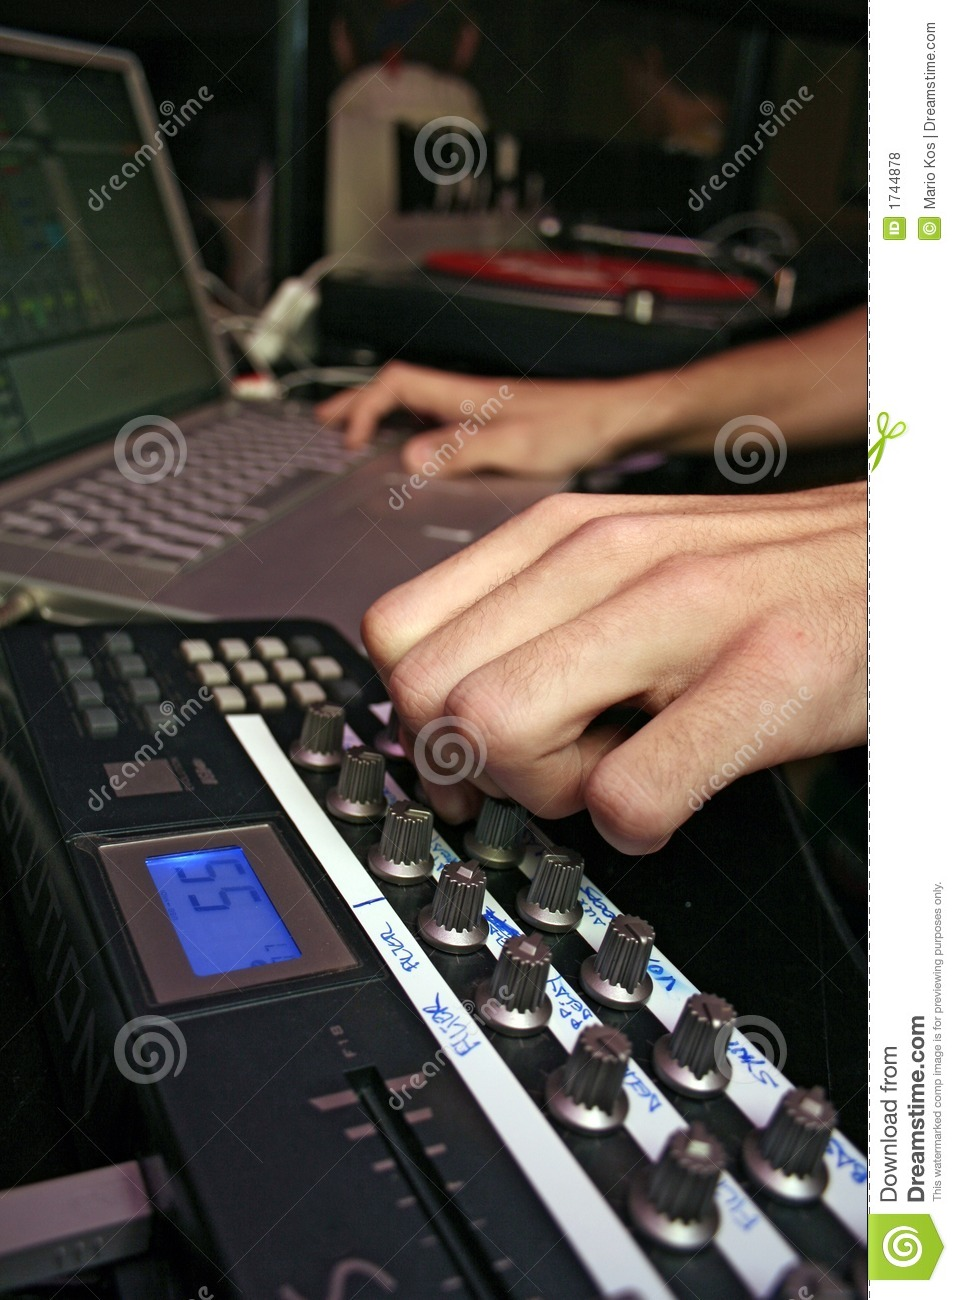 Midi Controller - DJ 9 stock photo  Image of spin, live